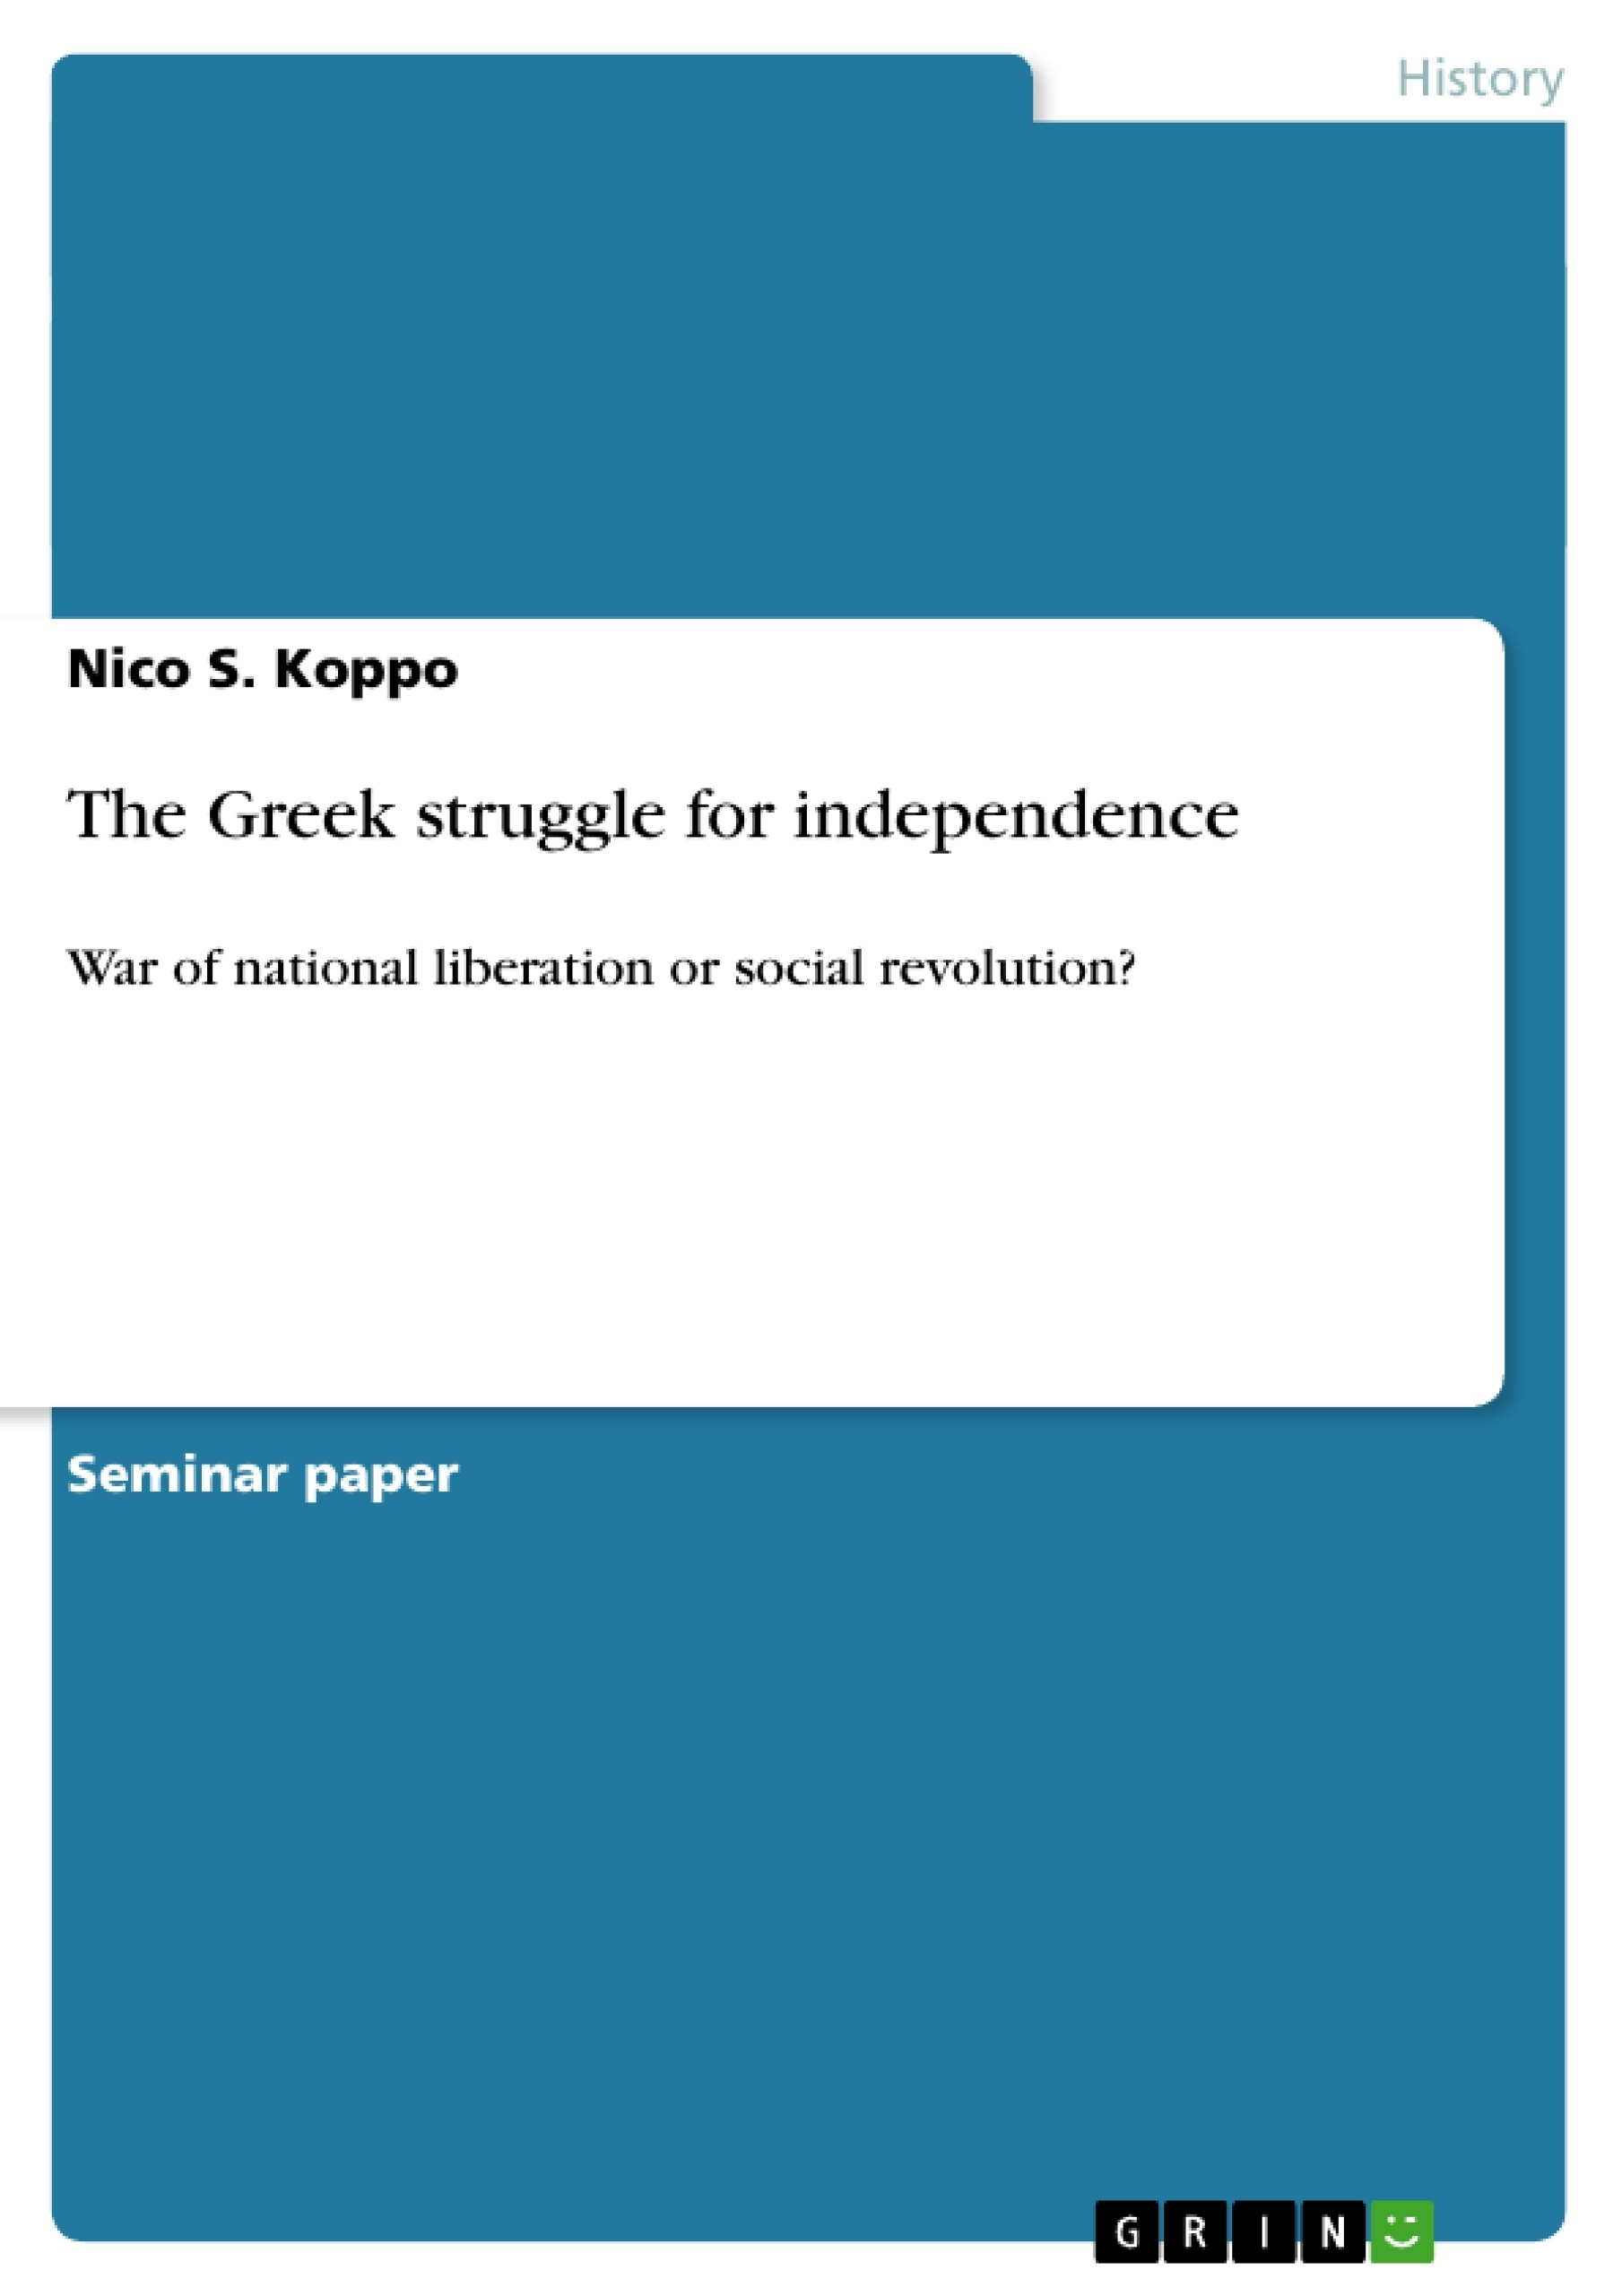 Title: The Greek struggle for independence